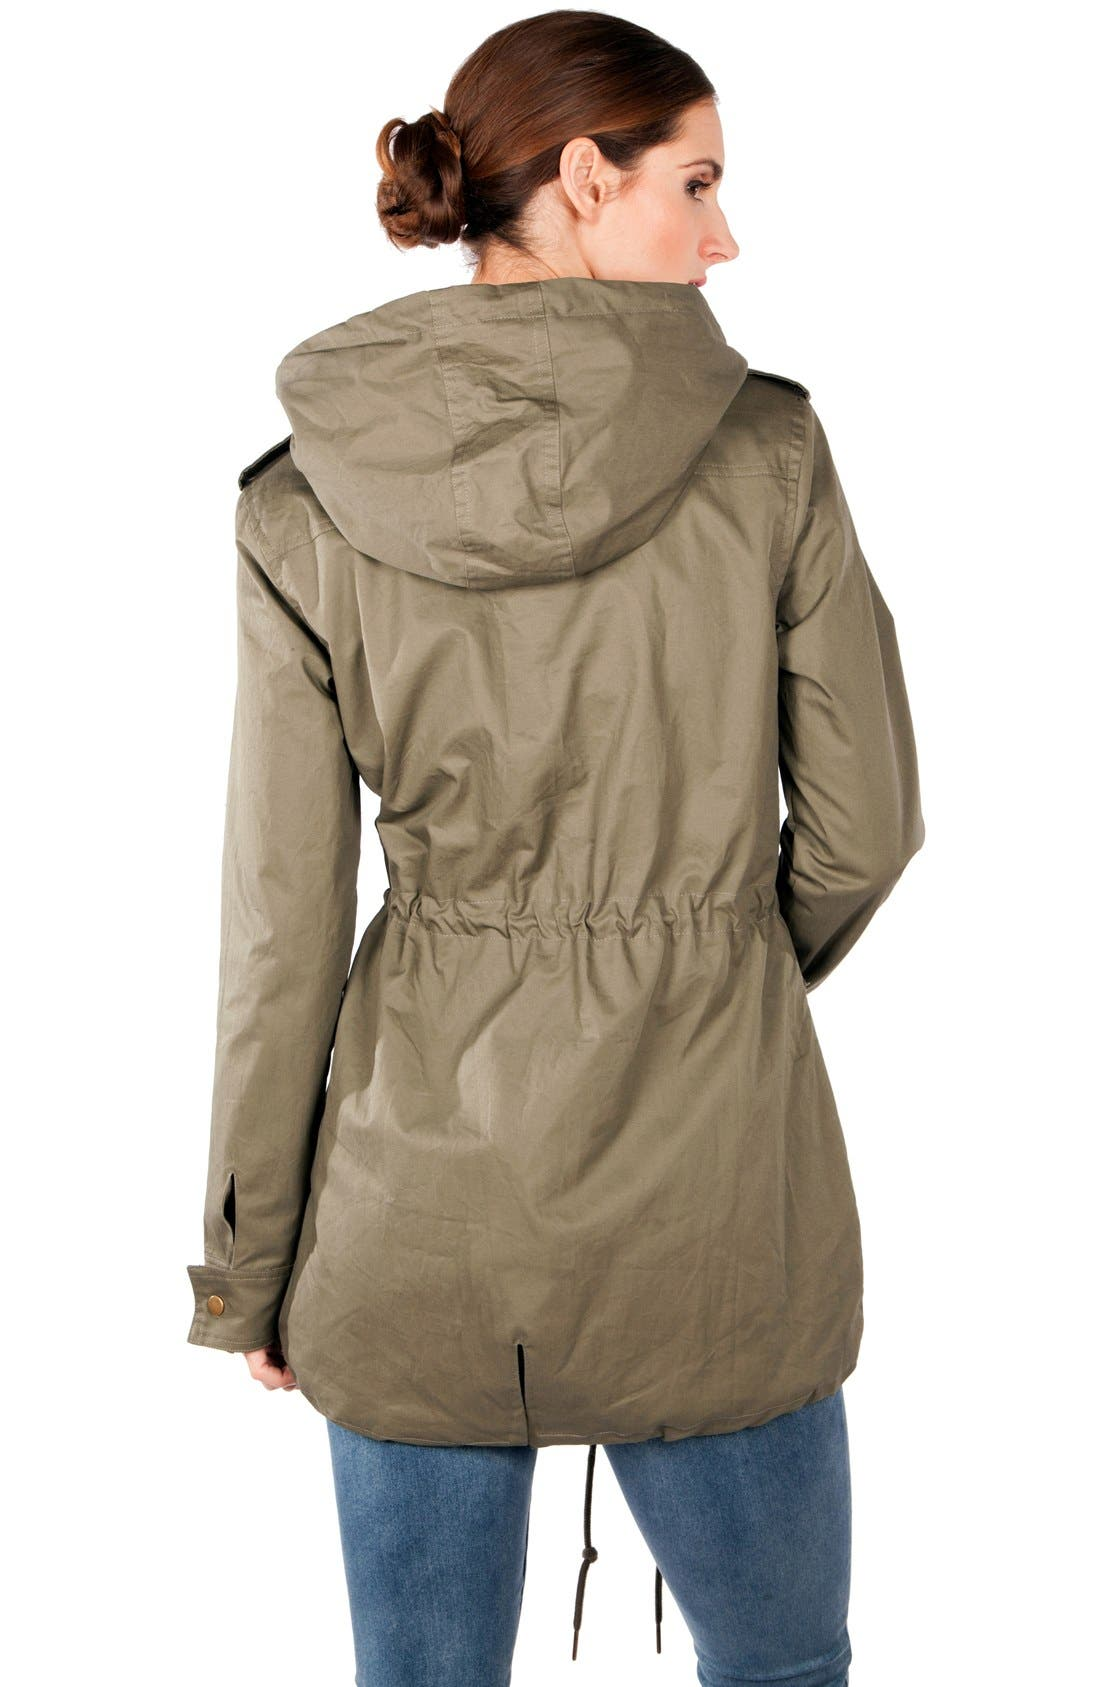 Convertible Military 3-in-1 Maternity/Nursing Jacket,                             Alternate thumbnail 8, color,                             KHAKI GREEN